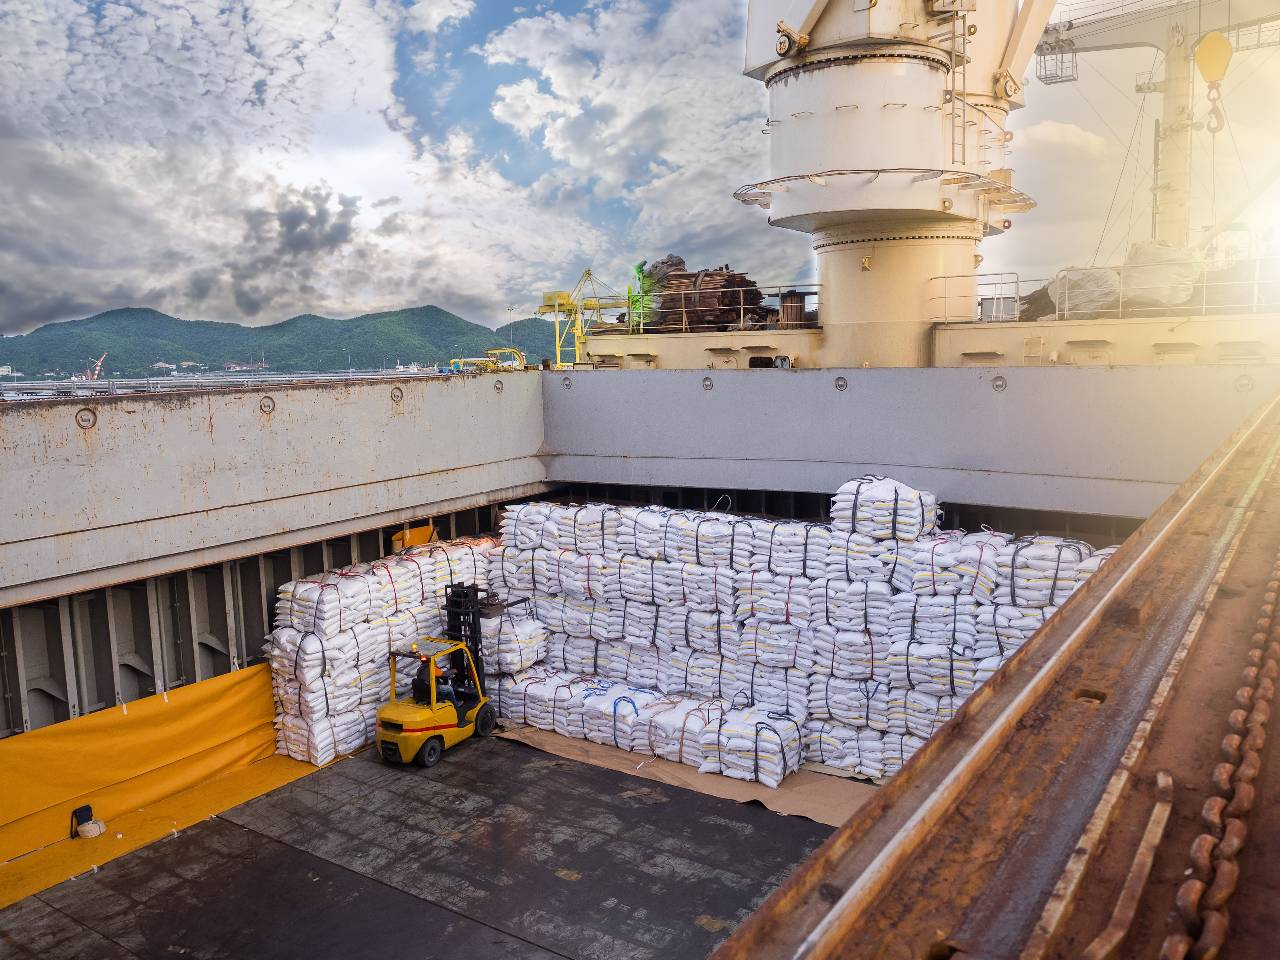 Amarin Jitnathum Forklift handles and stacks bags of sugar into a hold of the bulk carrier vessel.